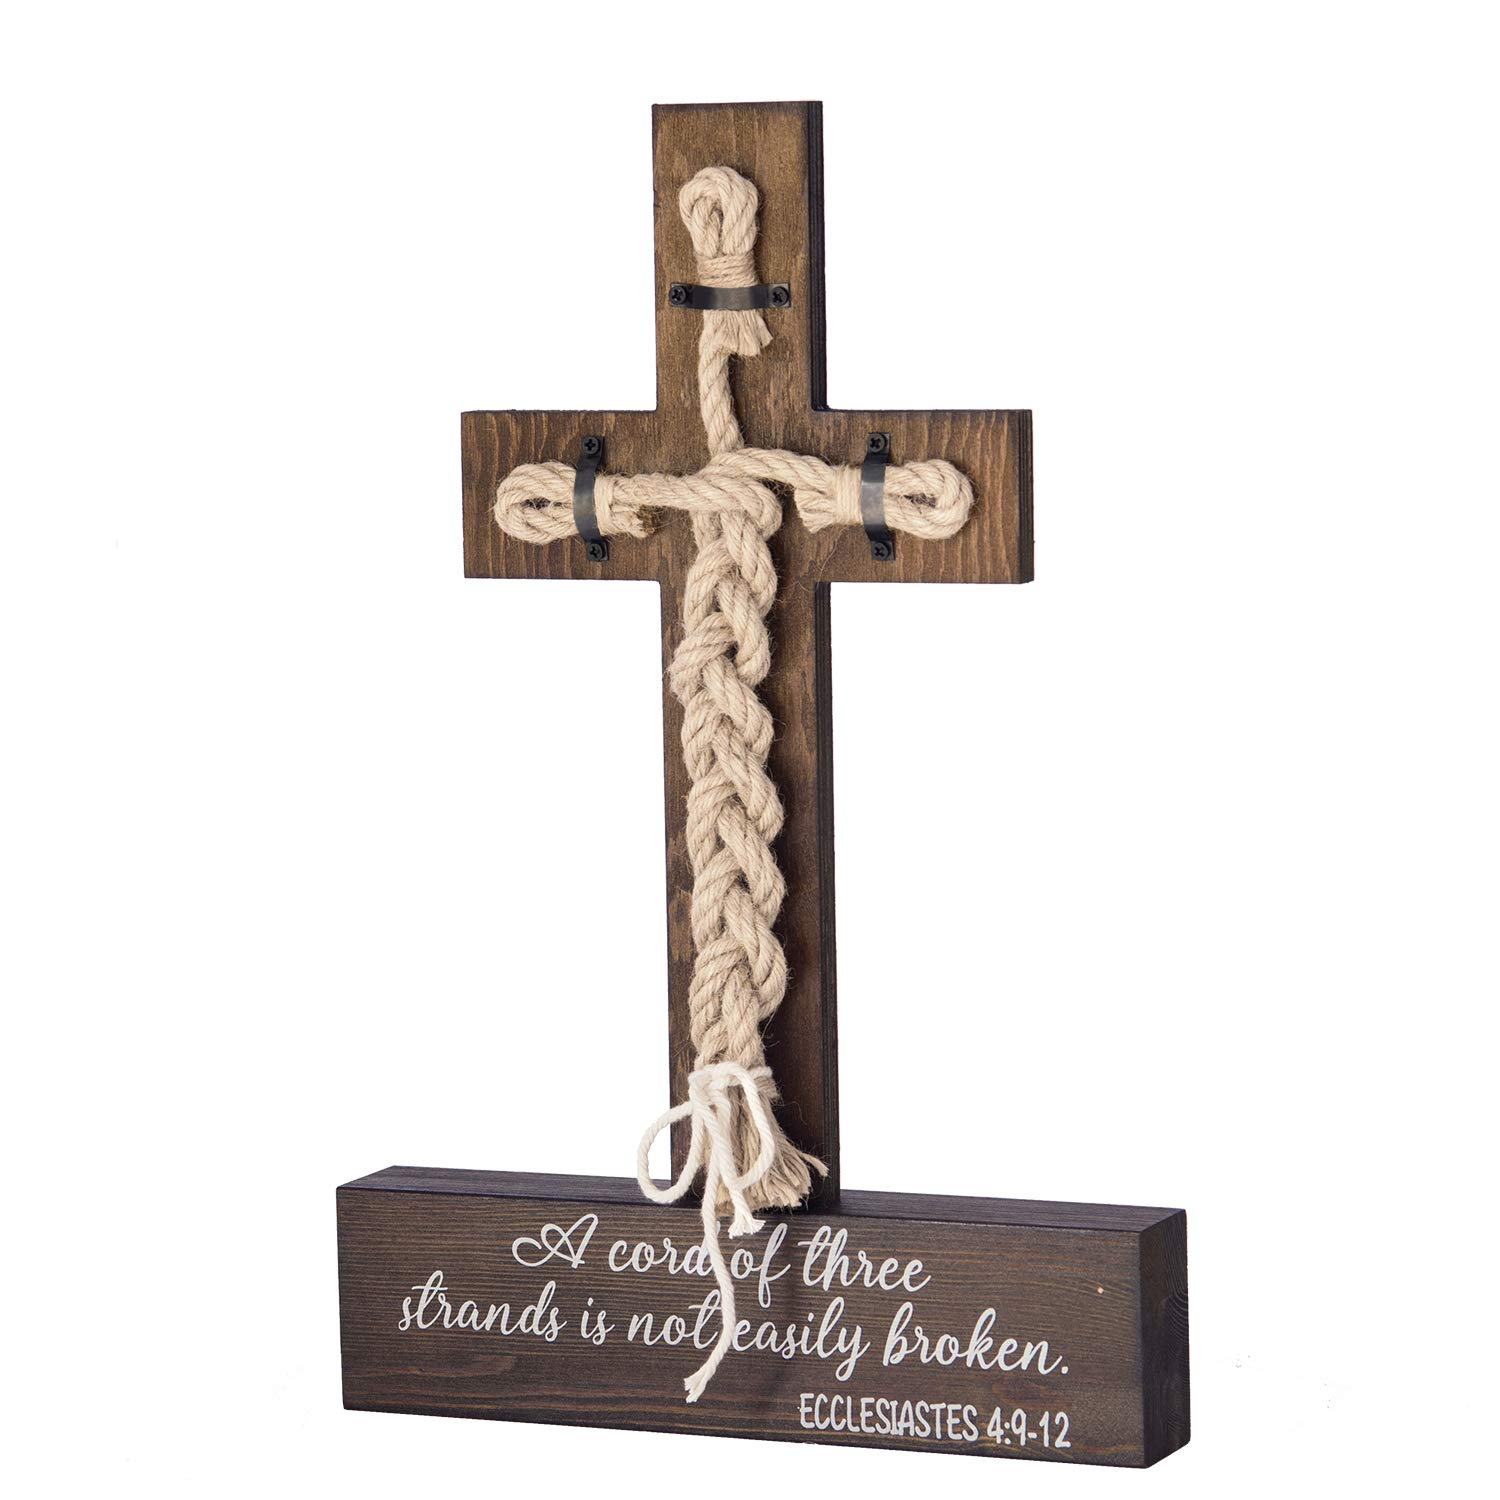 Ling's moment A Cord of Three Strands Wedding Sign - Bible Cross Wedding Unity Sign -Tie The Knot Ceremony - Strand of Three Cords Sign Ecclesiastes 4:9-12 by Ling's moment